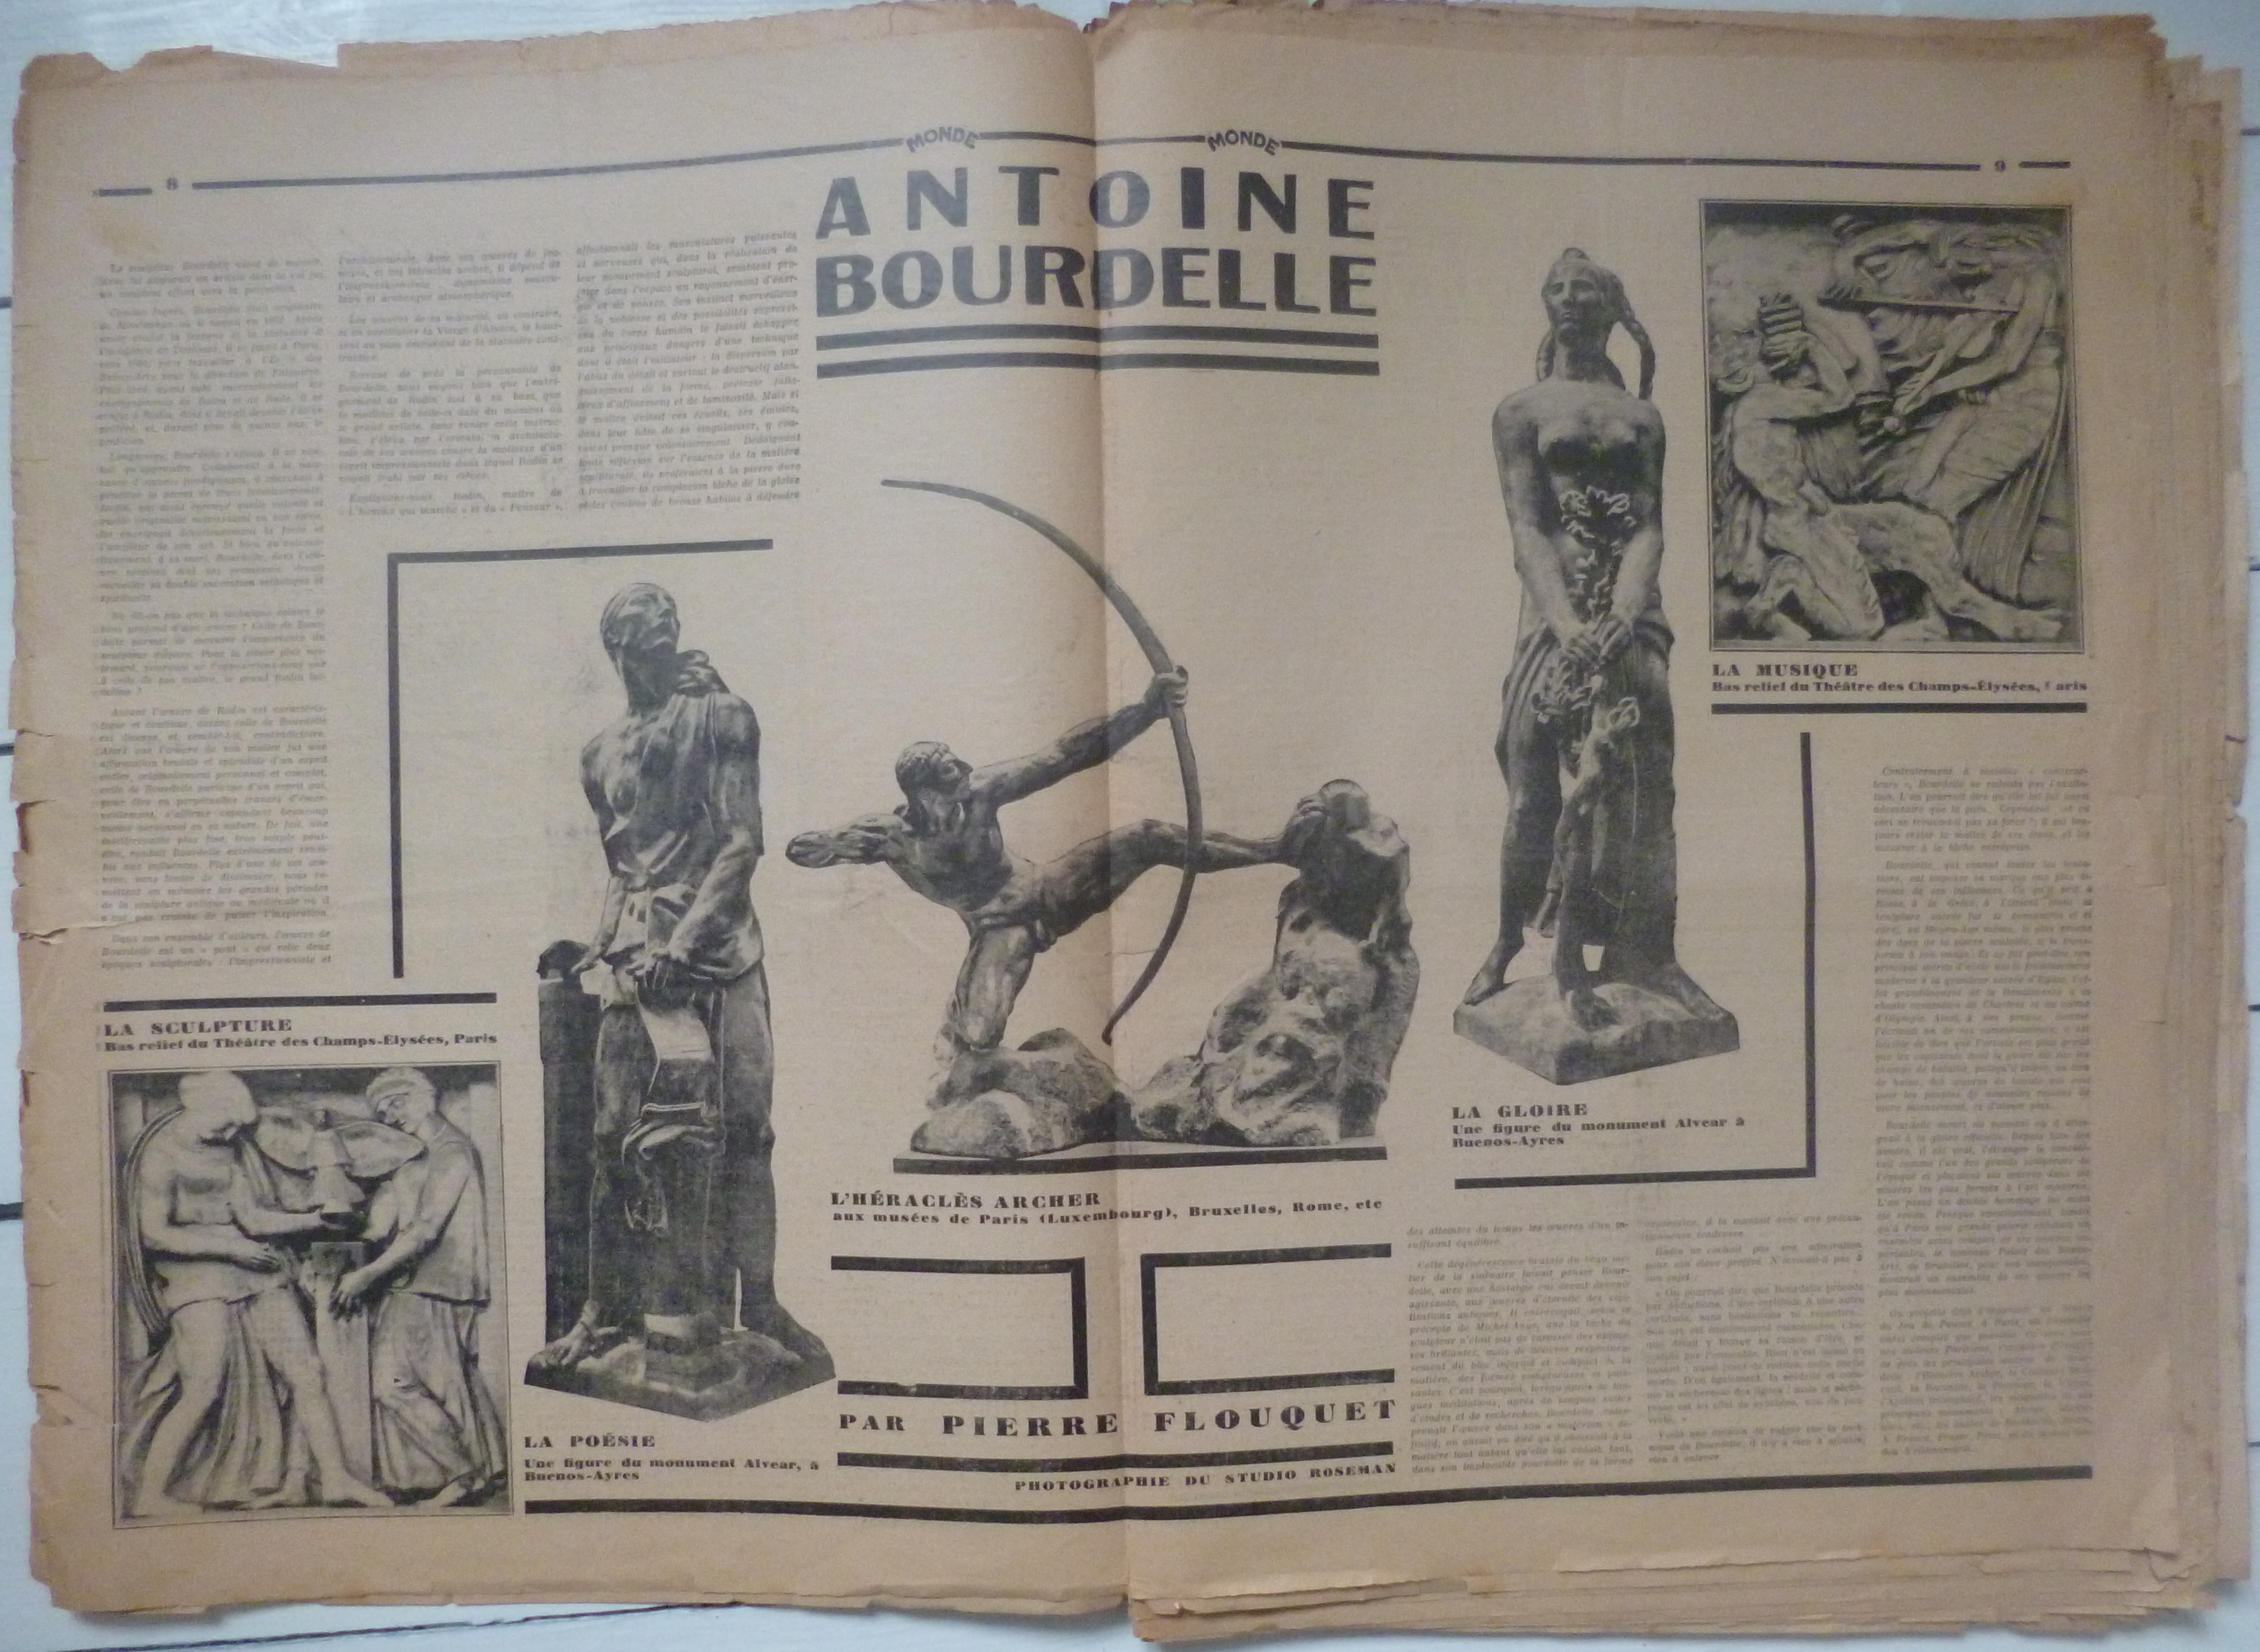 P.-L. Flouquet's article on the sculptor Antoine Bourdelle, in Monde, 17, 12 October 1929, offers an example of the double art page in Monde. / Private collection.